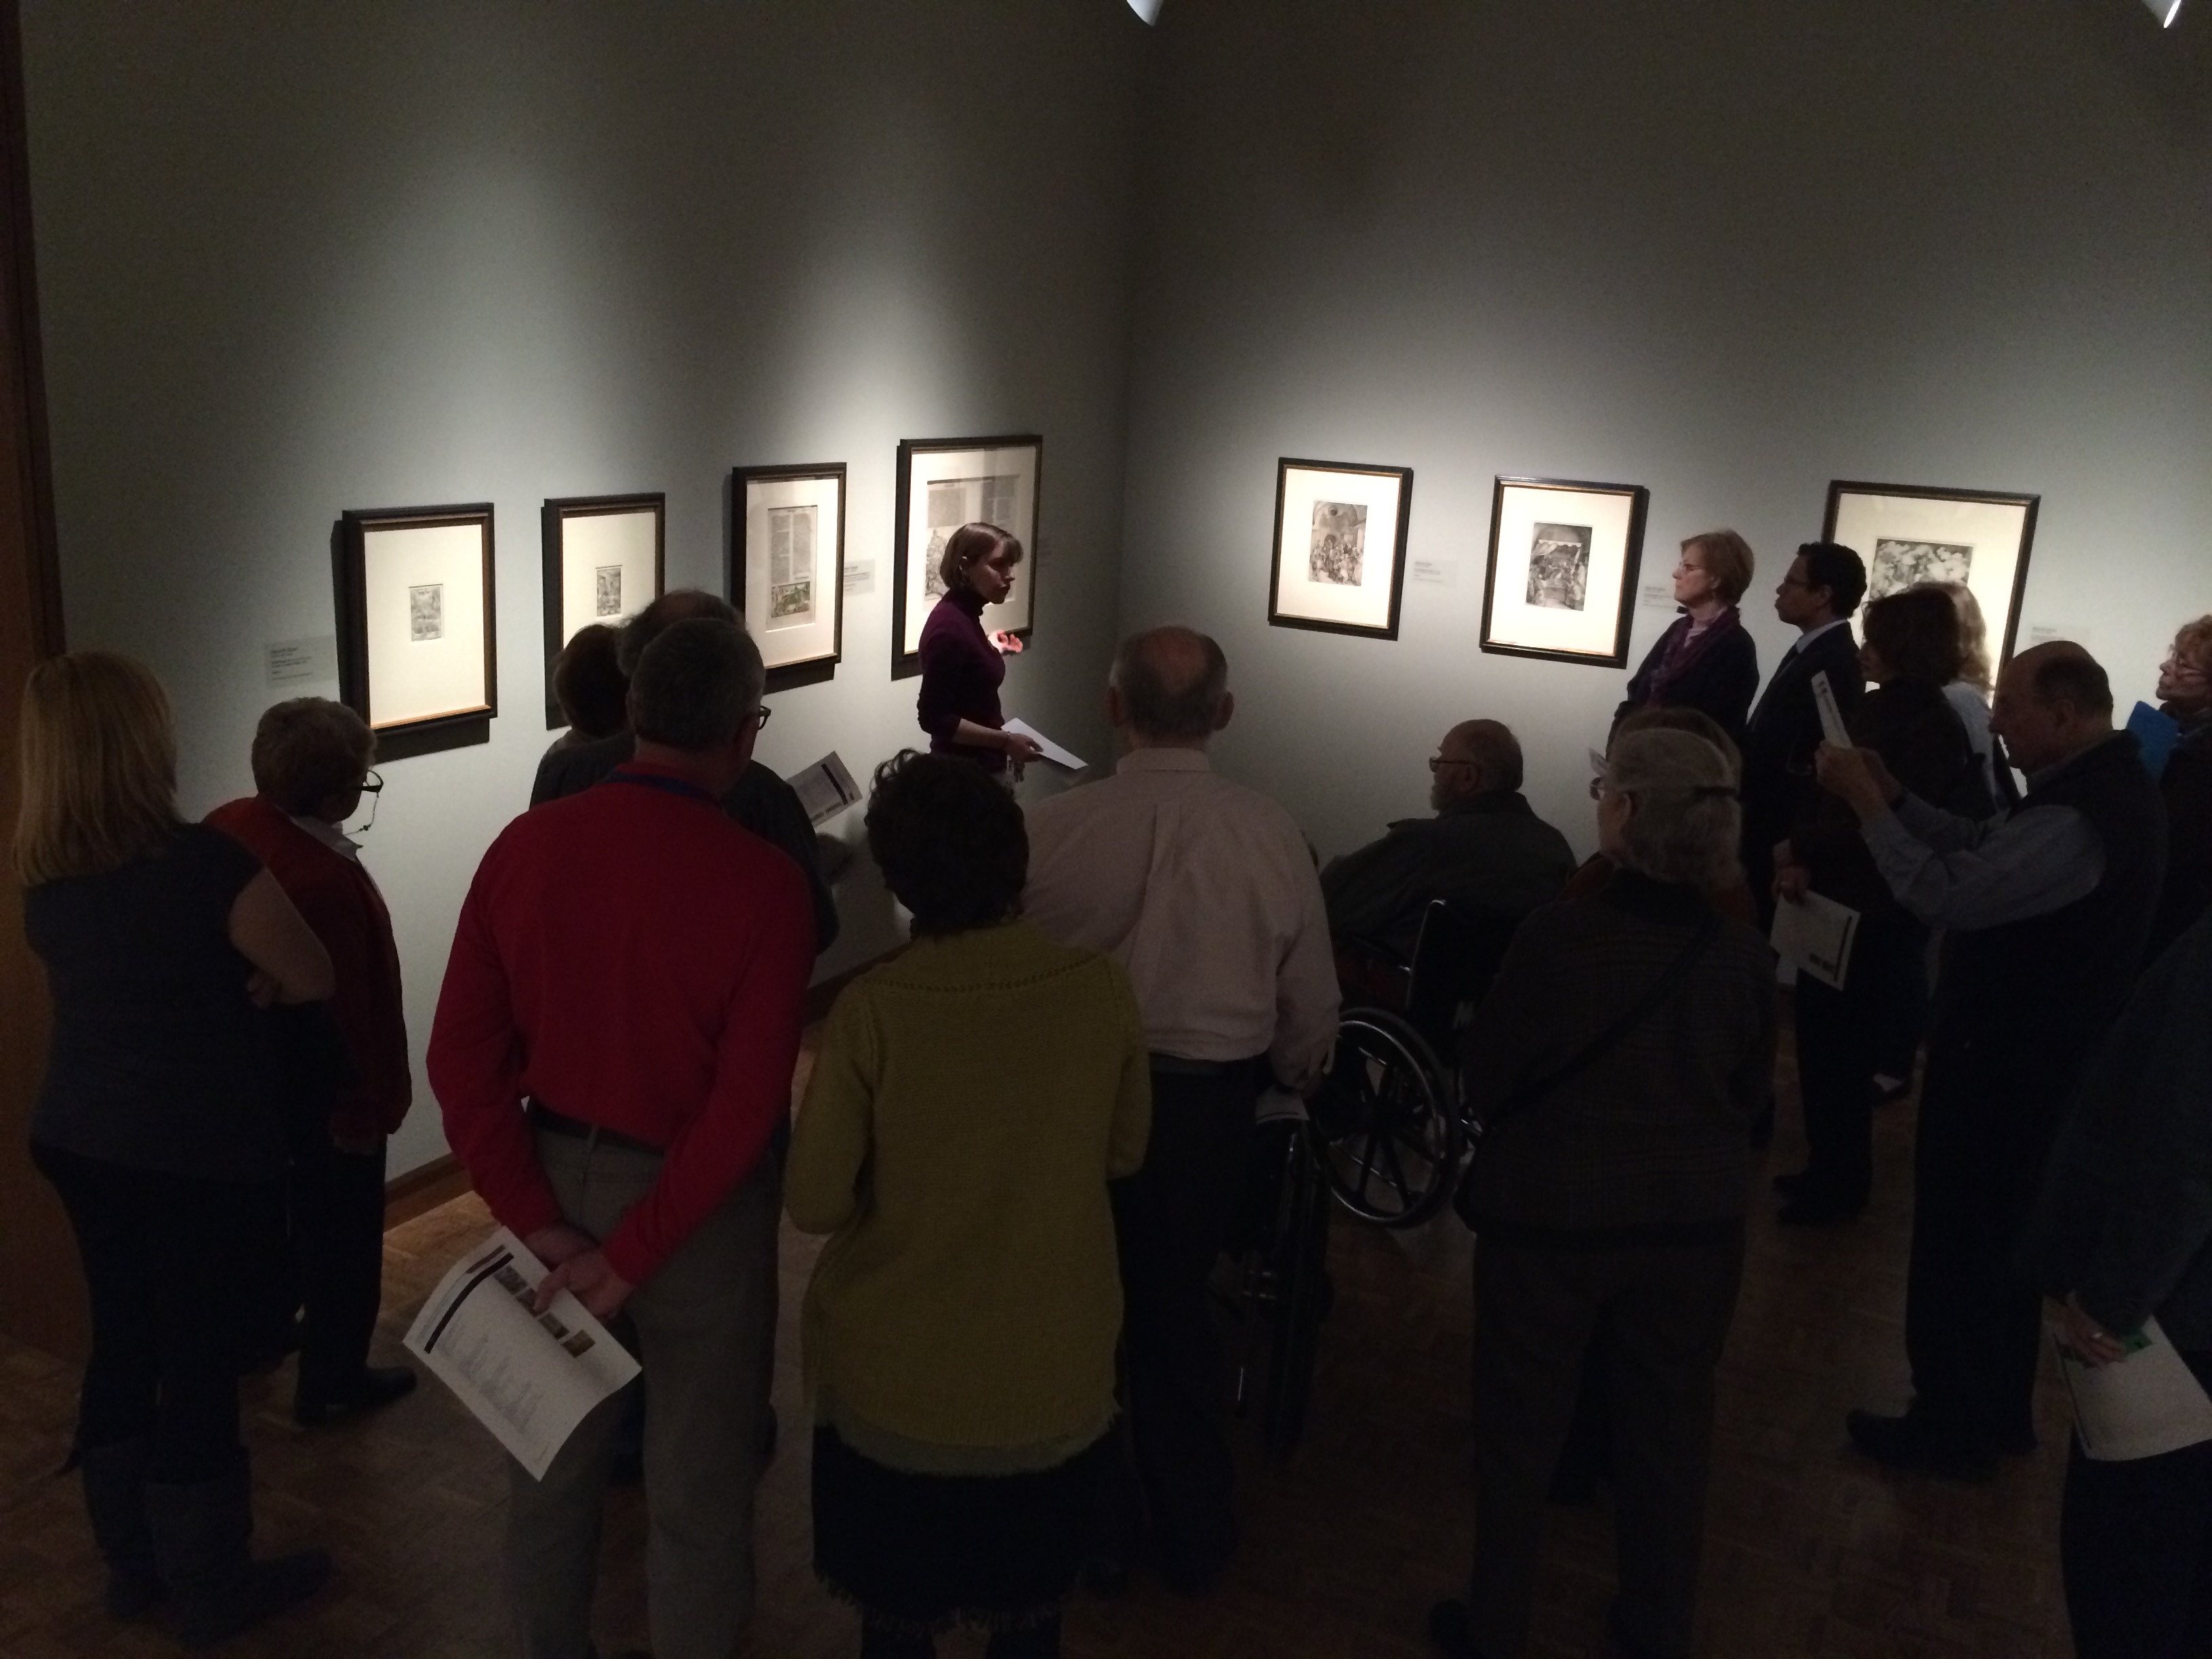 Tour of Dürer and the German Renaissance in the new European works on paper gallery. Photo credit: Tina Schinabeck